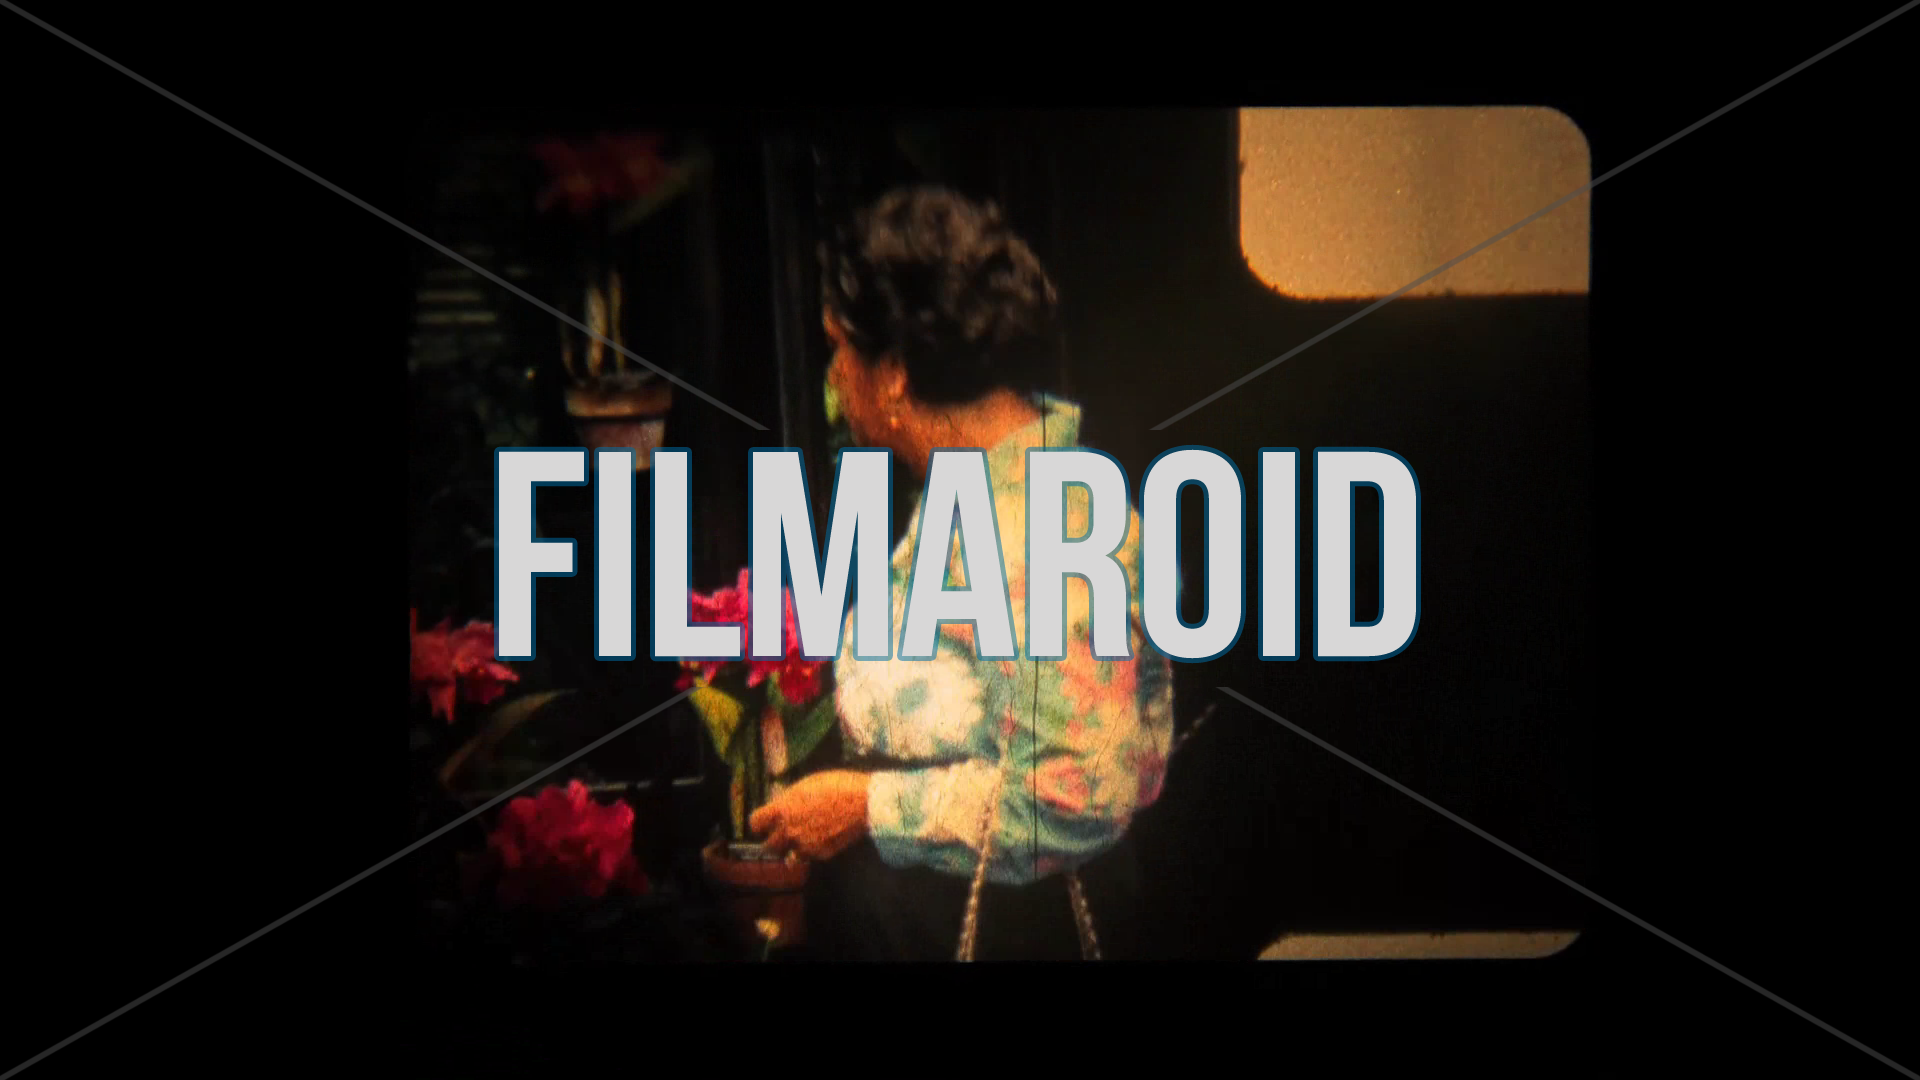 8mm footage of an older lady looking at some flowers - Vintage 8mm footage of an older lady taking a look at beautiful flowers and choosing which ones to buy in her colorful flower pattern blouse